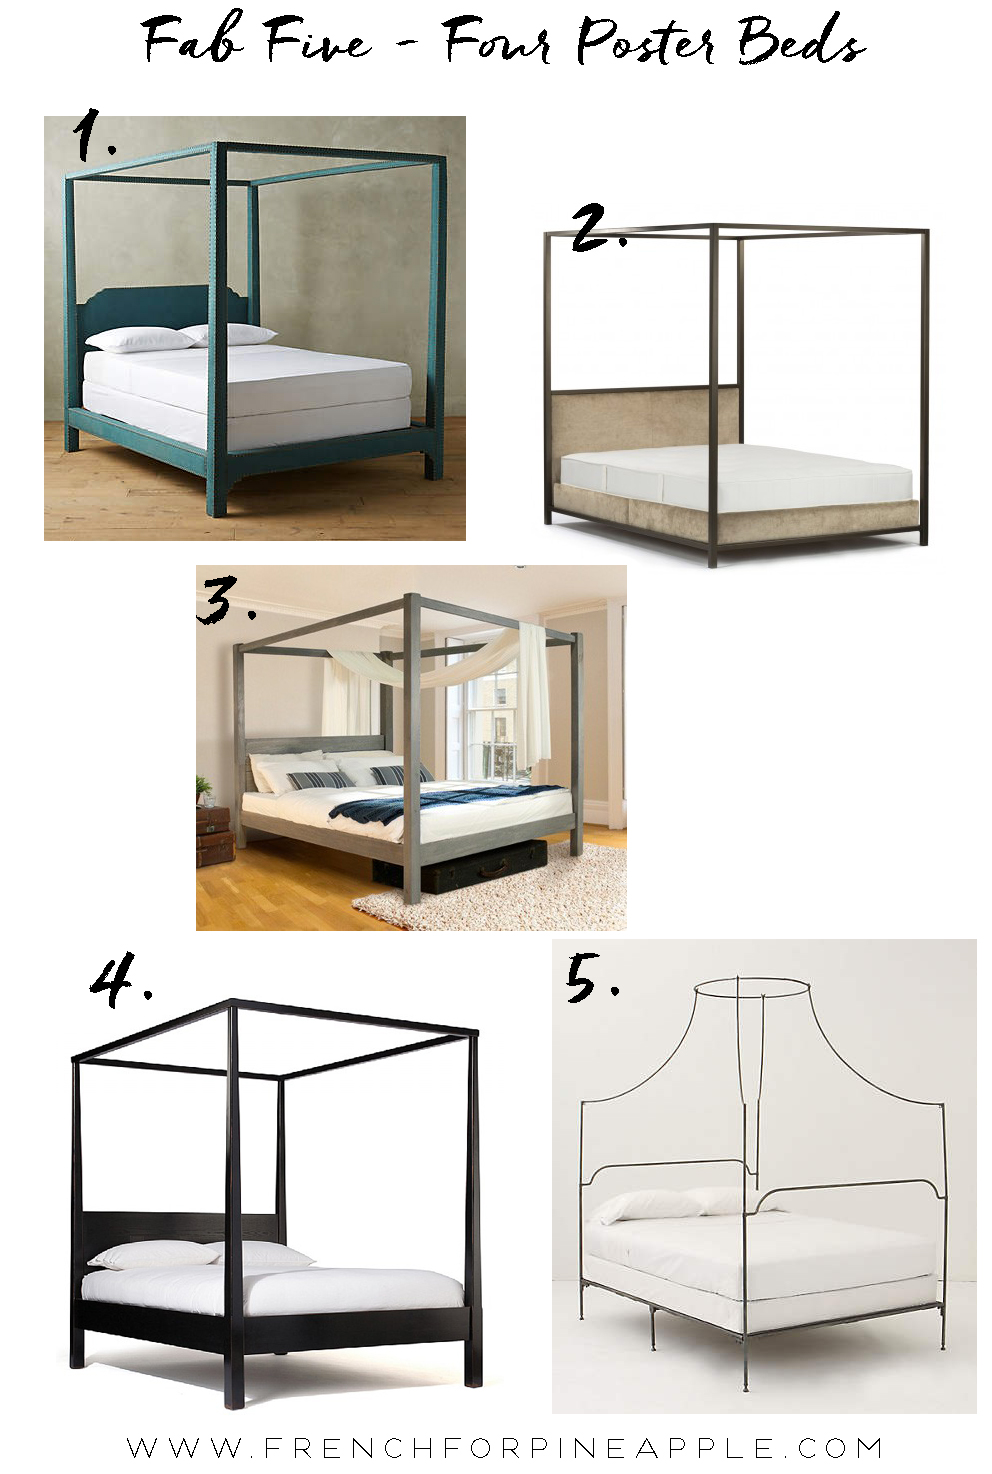 Fab Five Four Poster Beds - French For Pineapple Blog